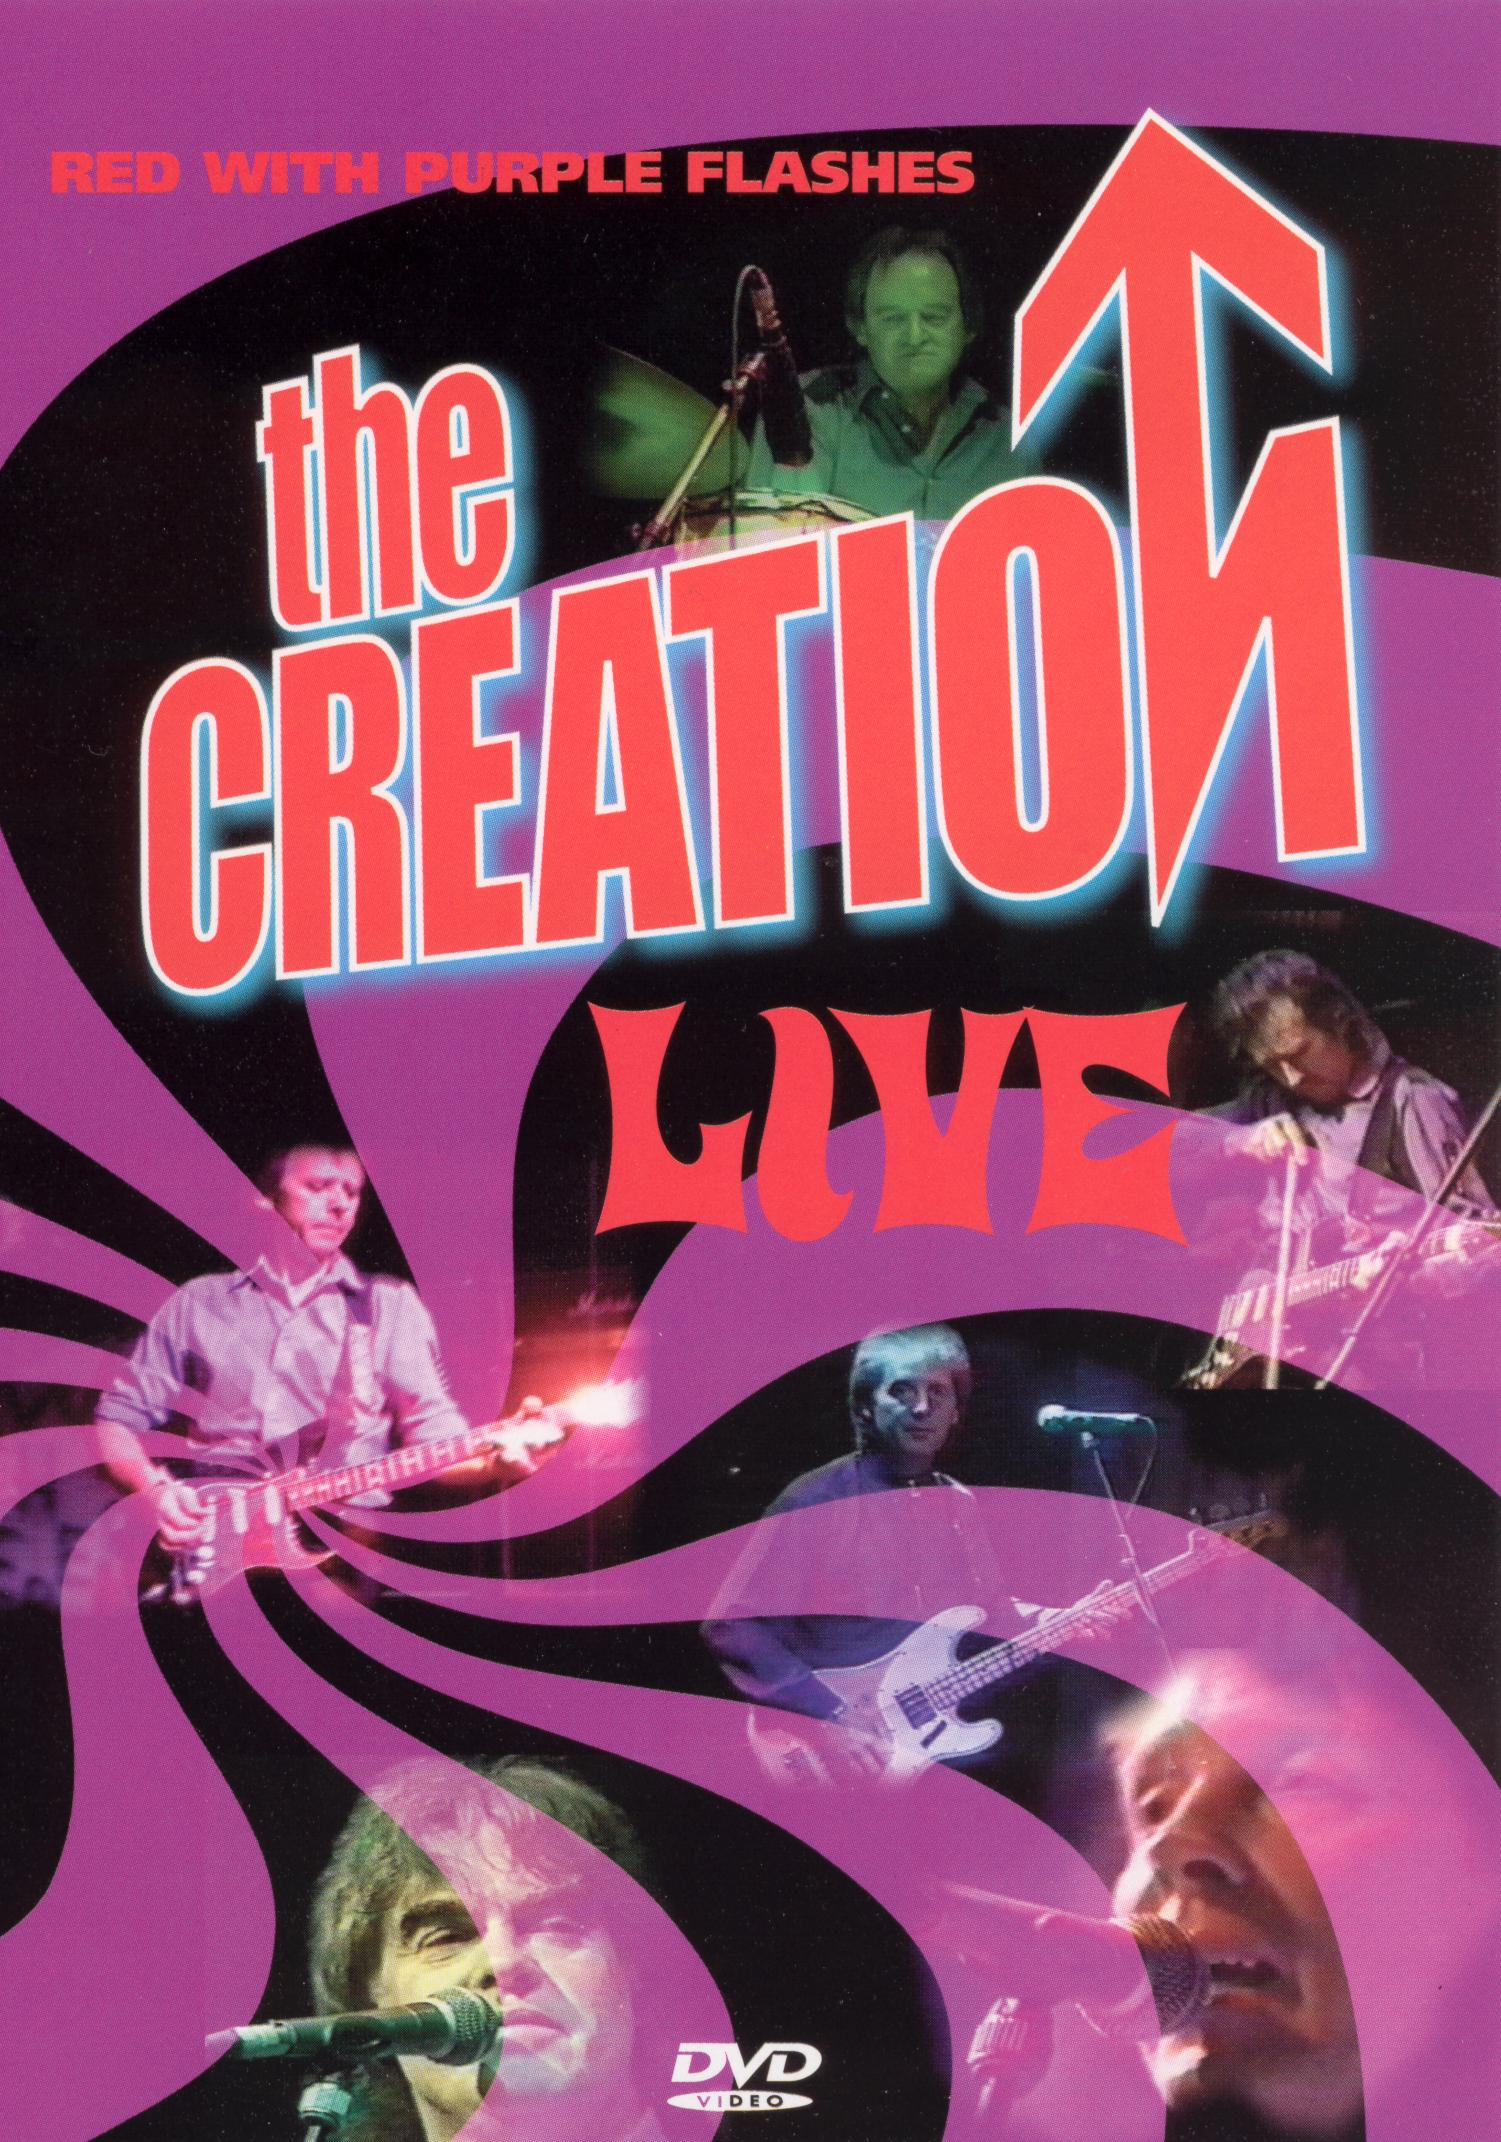 The Creation: Red With Purple Flashes - Live